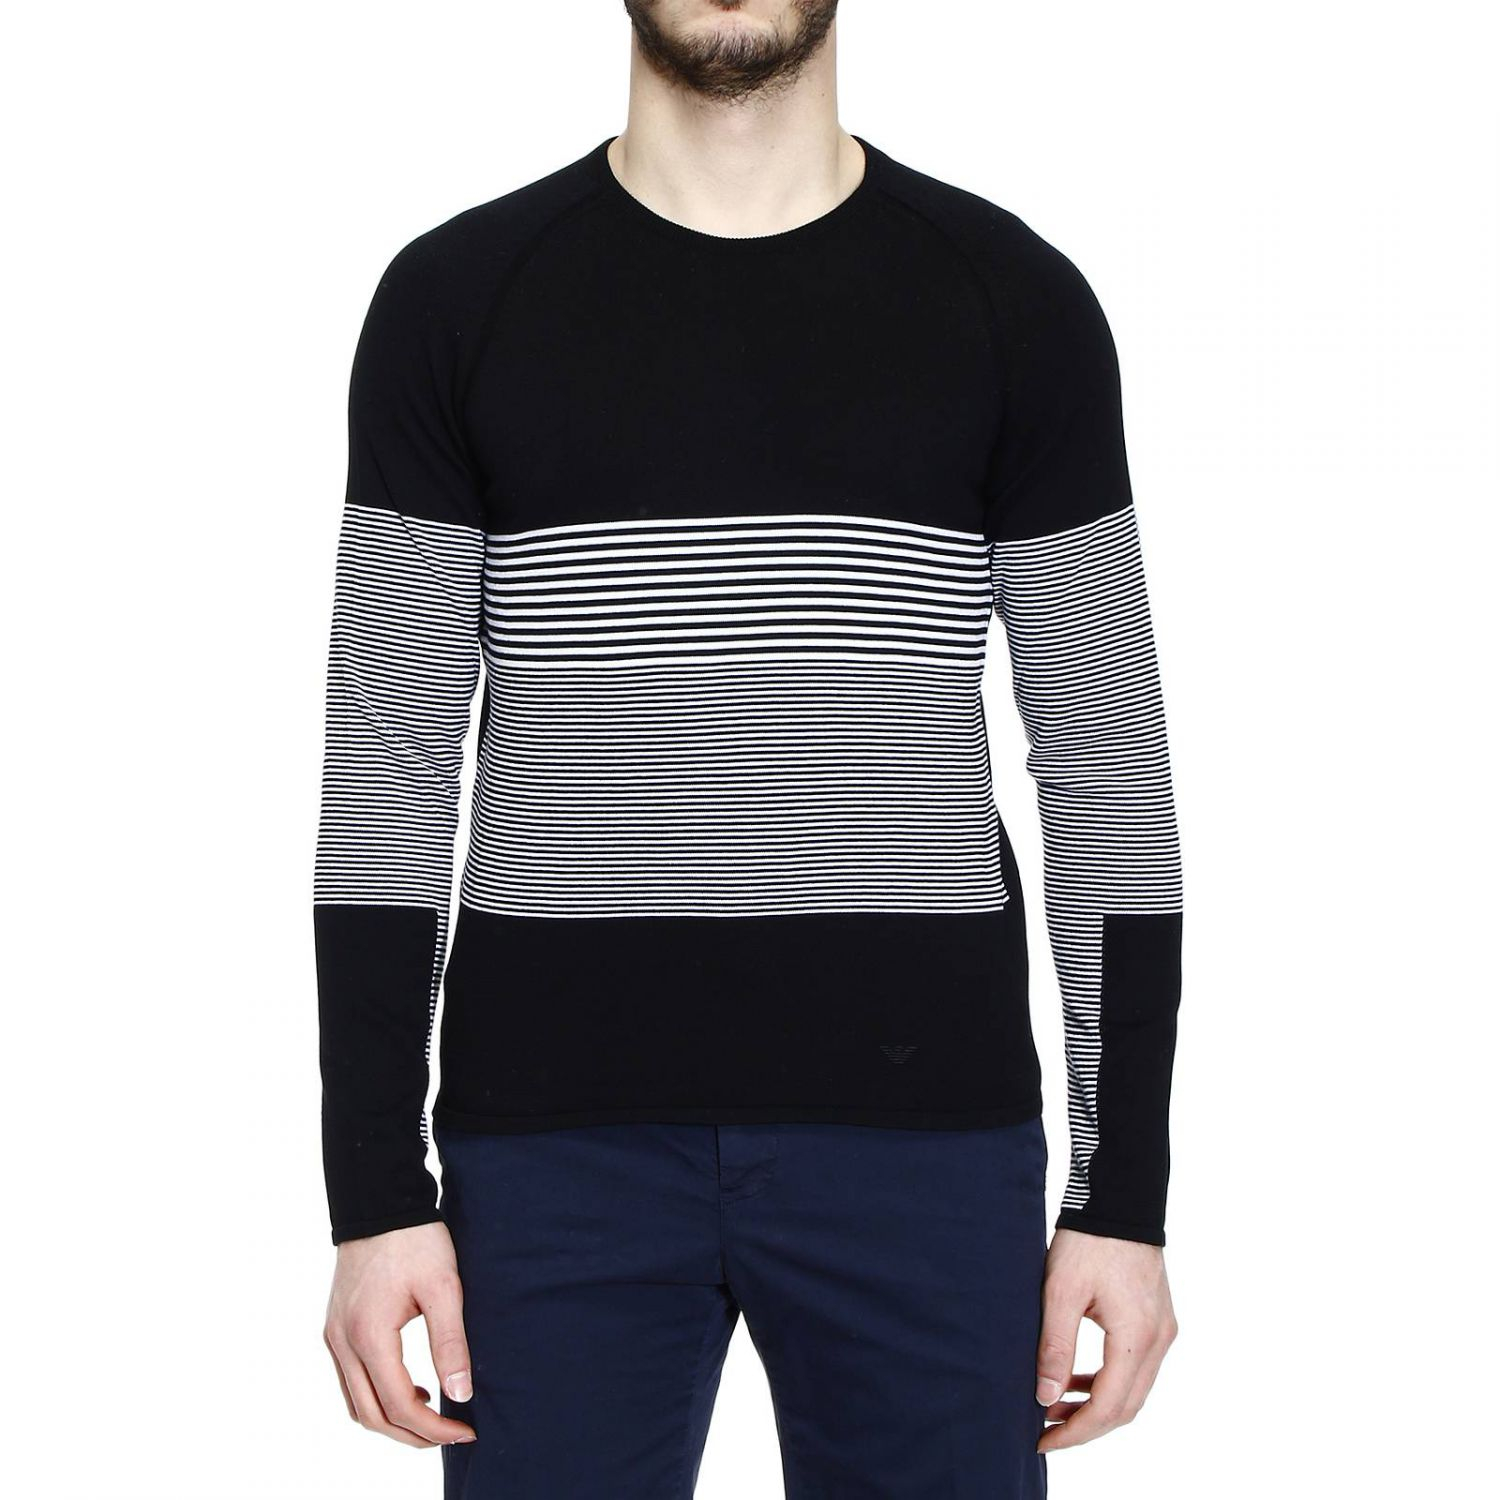 emporio armani sweater knit crew neck with contrast lines. Black Bedroom Furniture Sets. Home Design Ideas